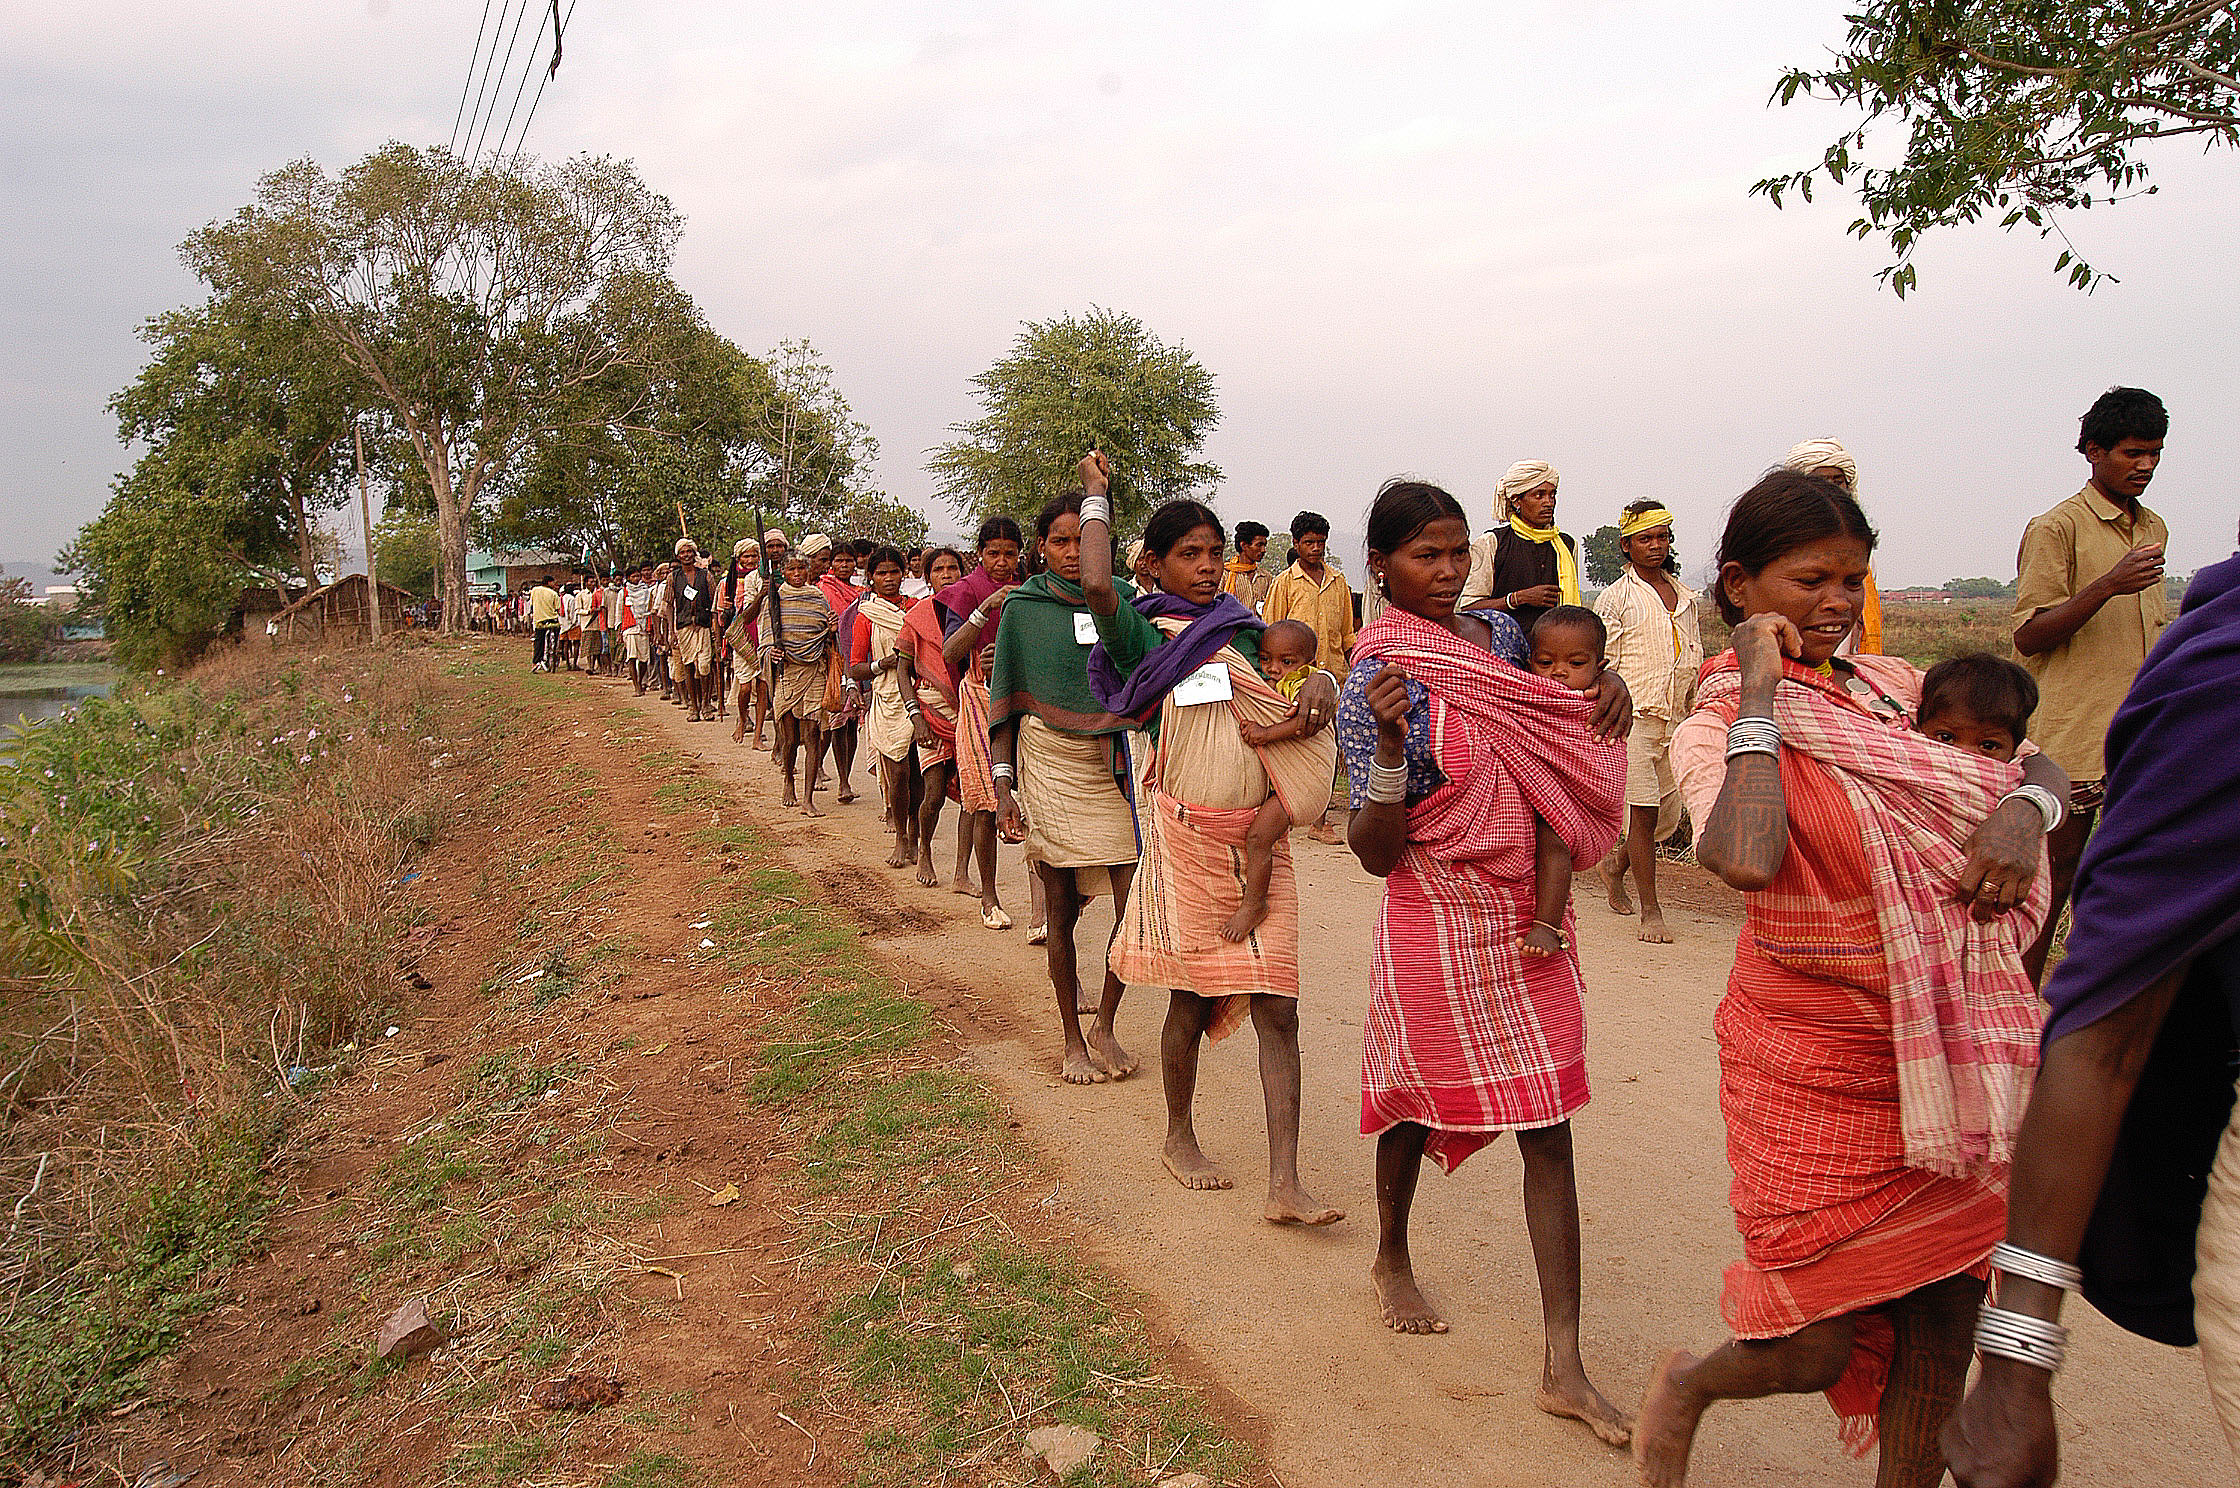 Baiga adivasi in protest walk, India